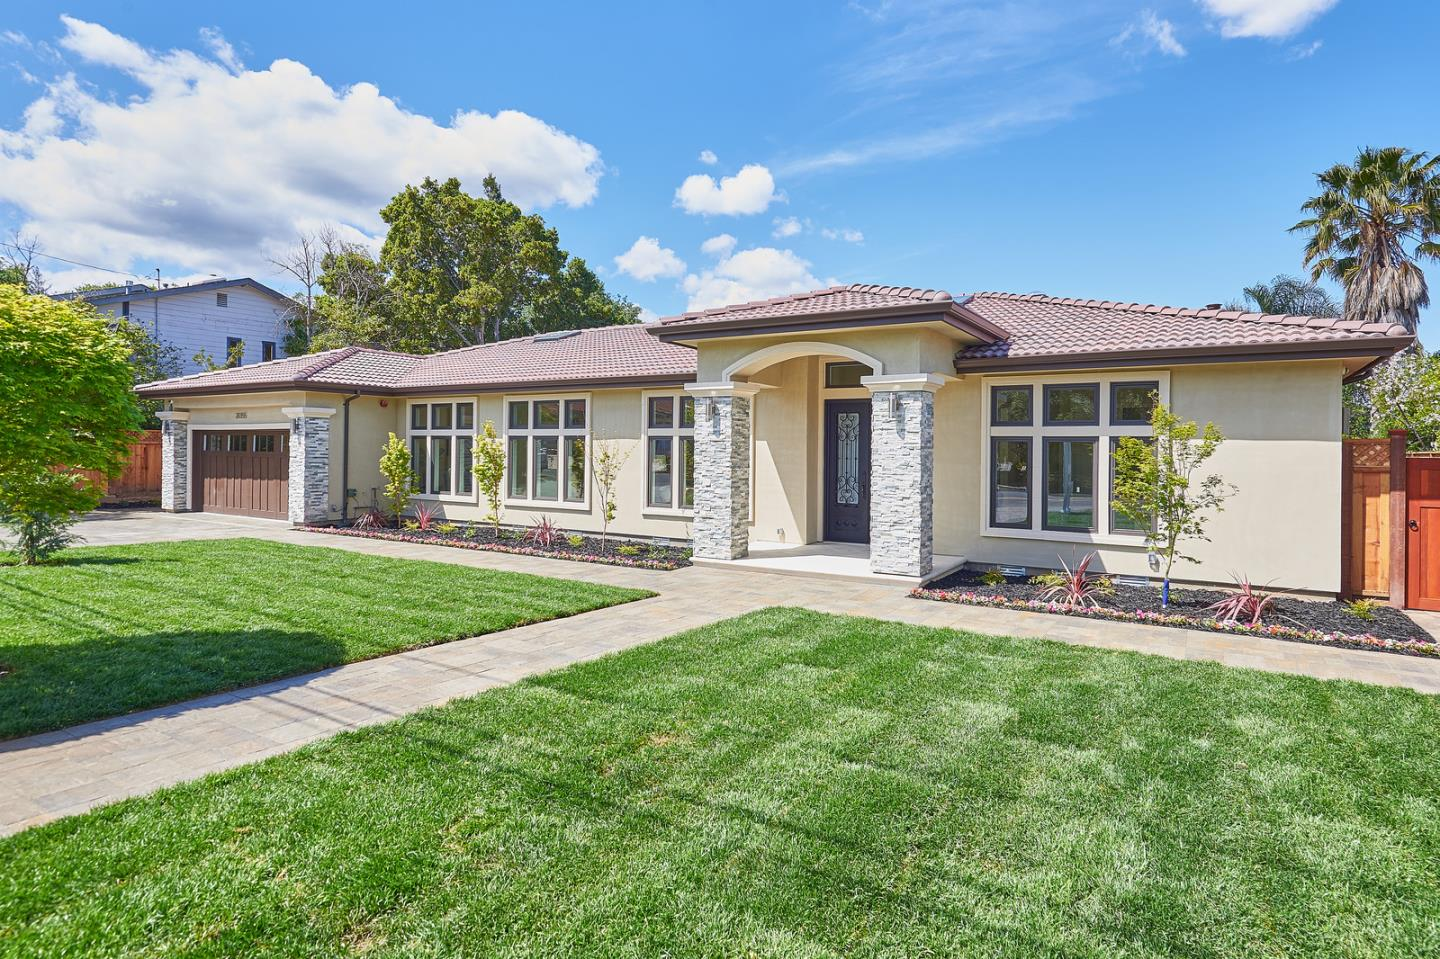 20355 Franklin AVE, SARATOGA, California